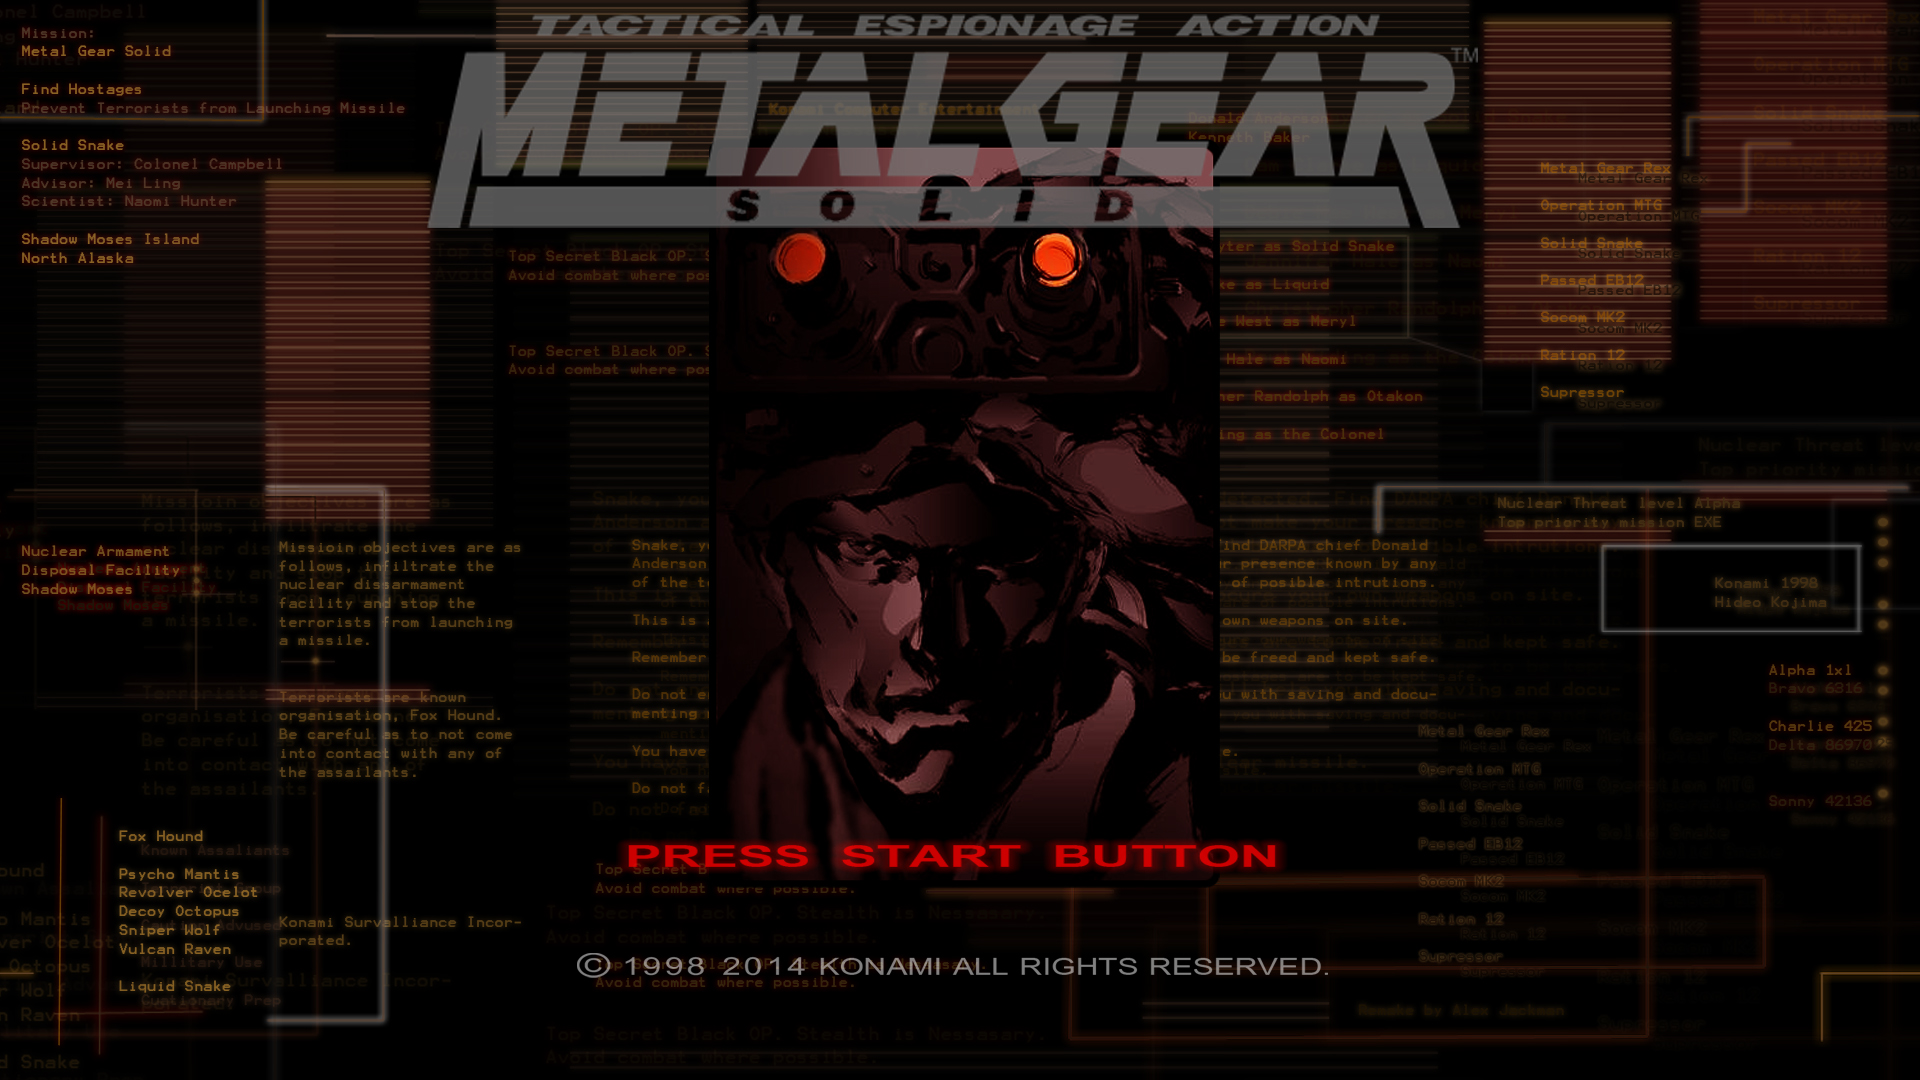 Metal Gear Solid 1 Wallpaper 1920x1080 posted by Samantha Peltier